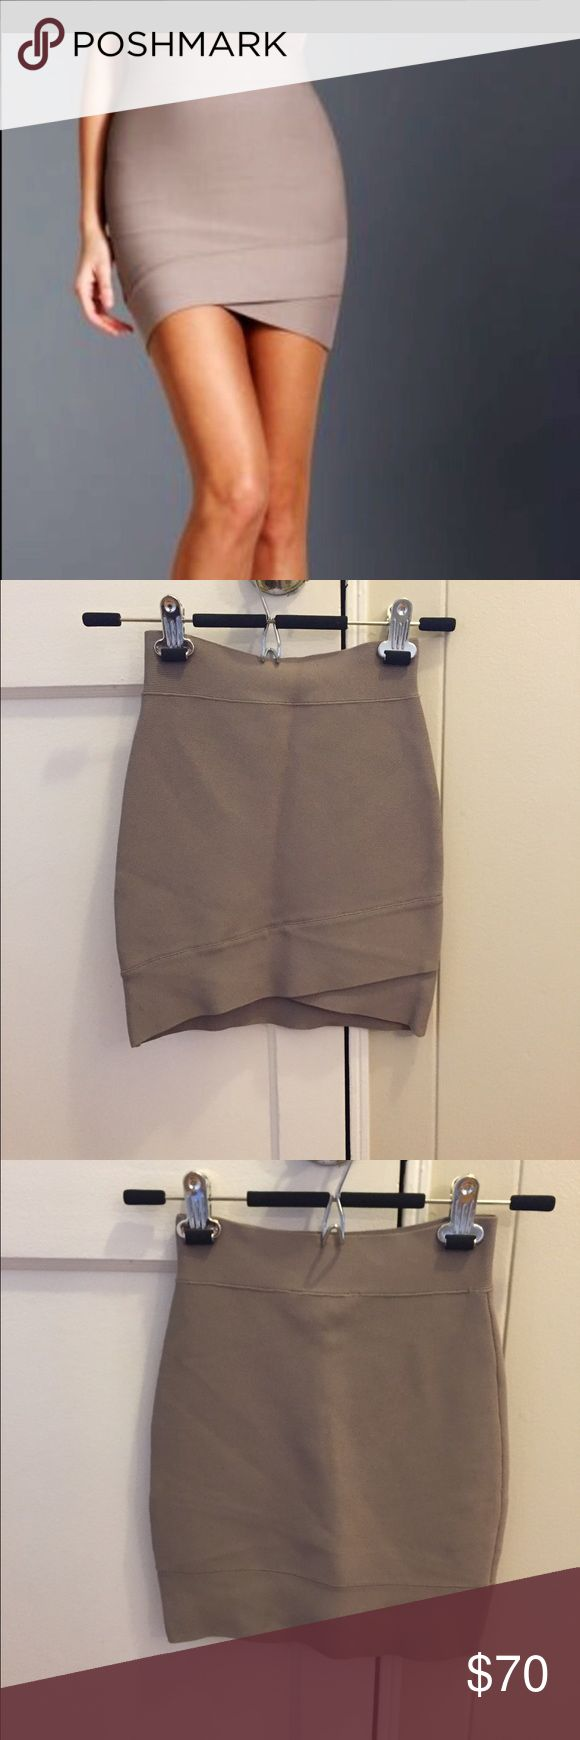 BCBG Bandage Skirt XXS BCBG beige/ brown bandage skirt. Work once very briefly. No signs of wear. Size XXS. Front is a little shorter than back (see images). Price flexible! Great for office or night out! BCBGMaxAzria Skirts